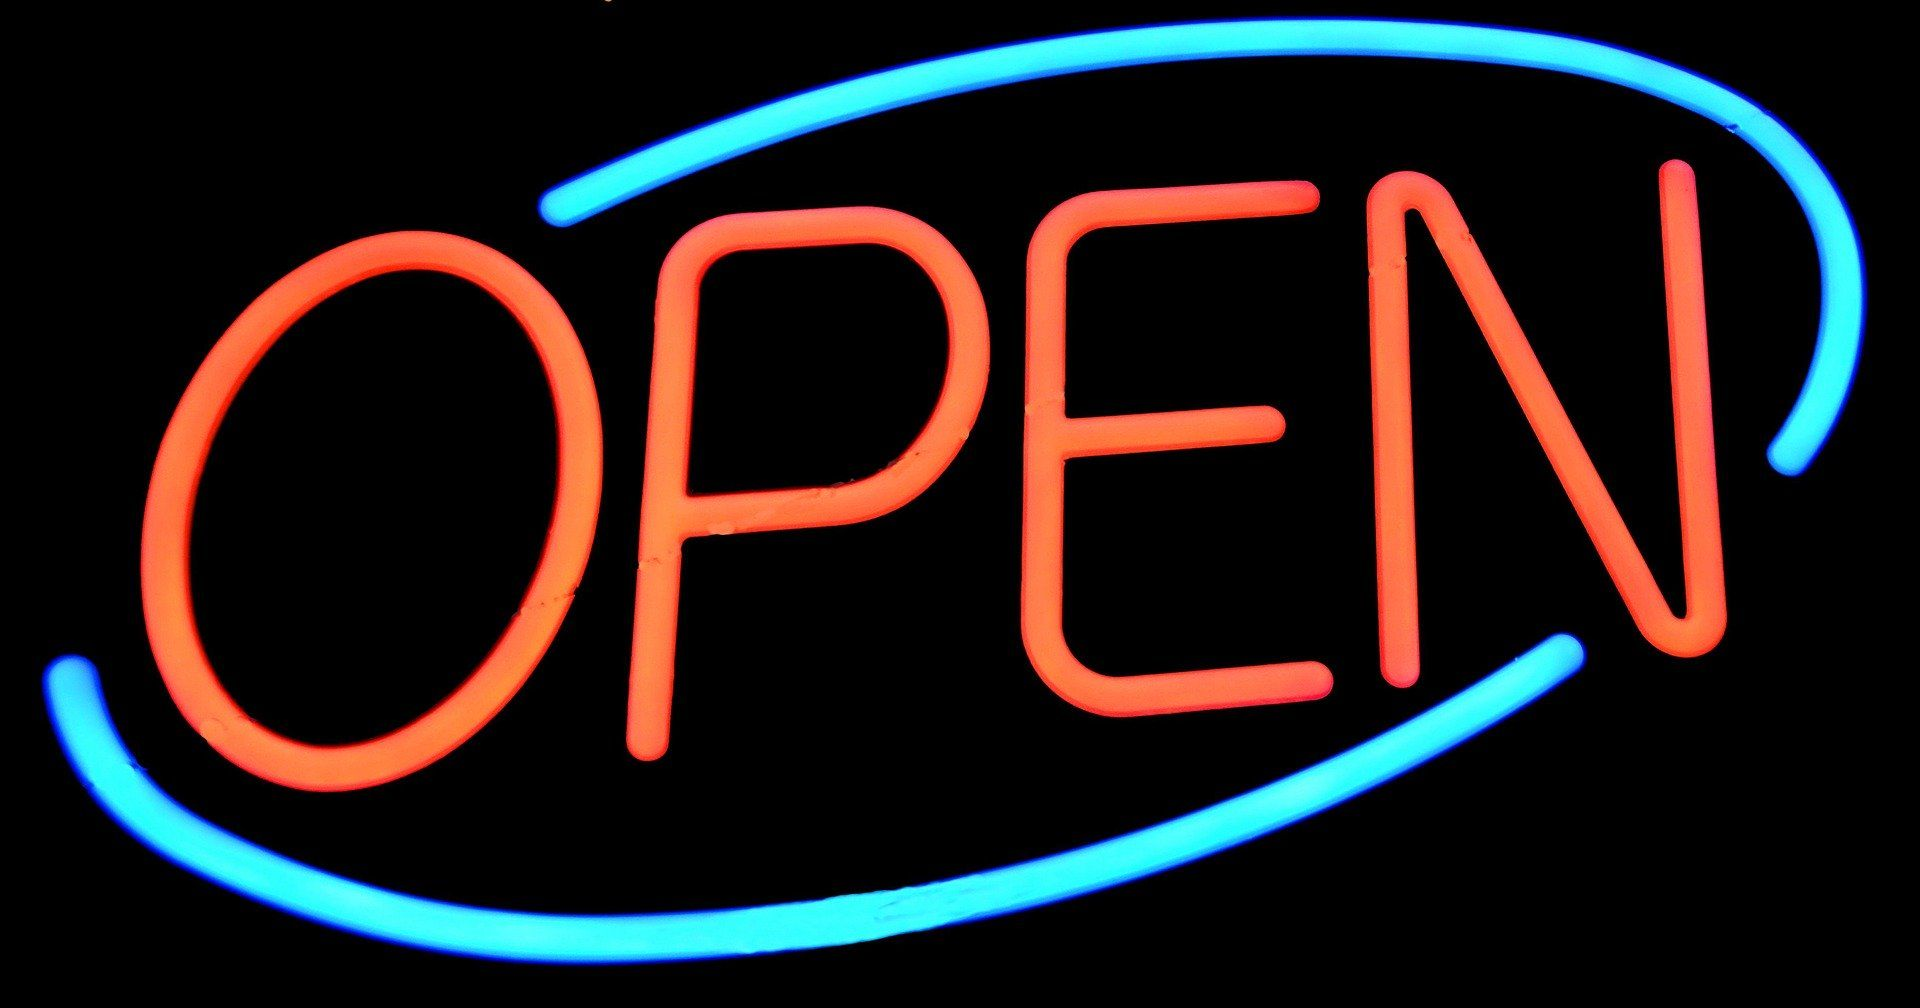 open sign 1617495 1920